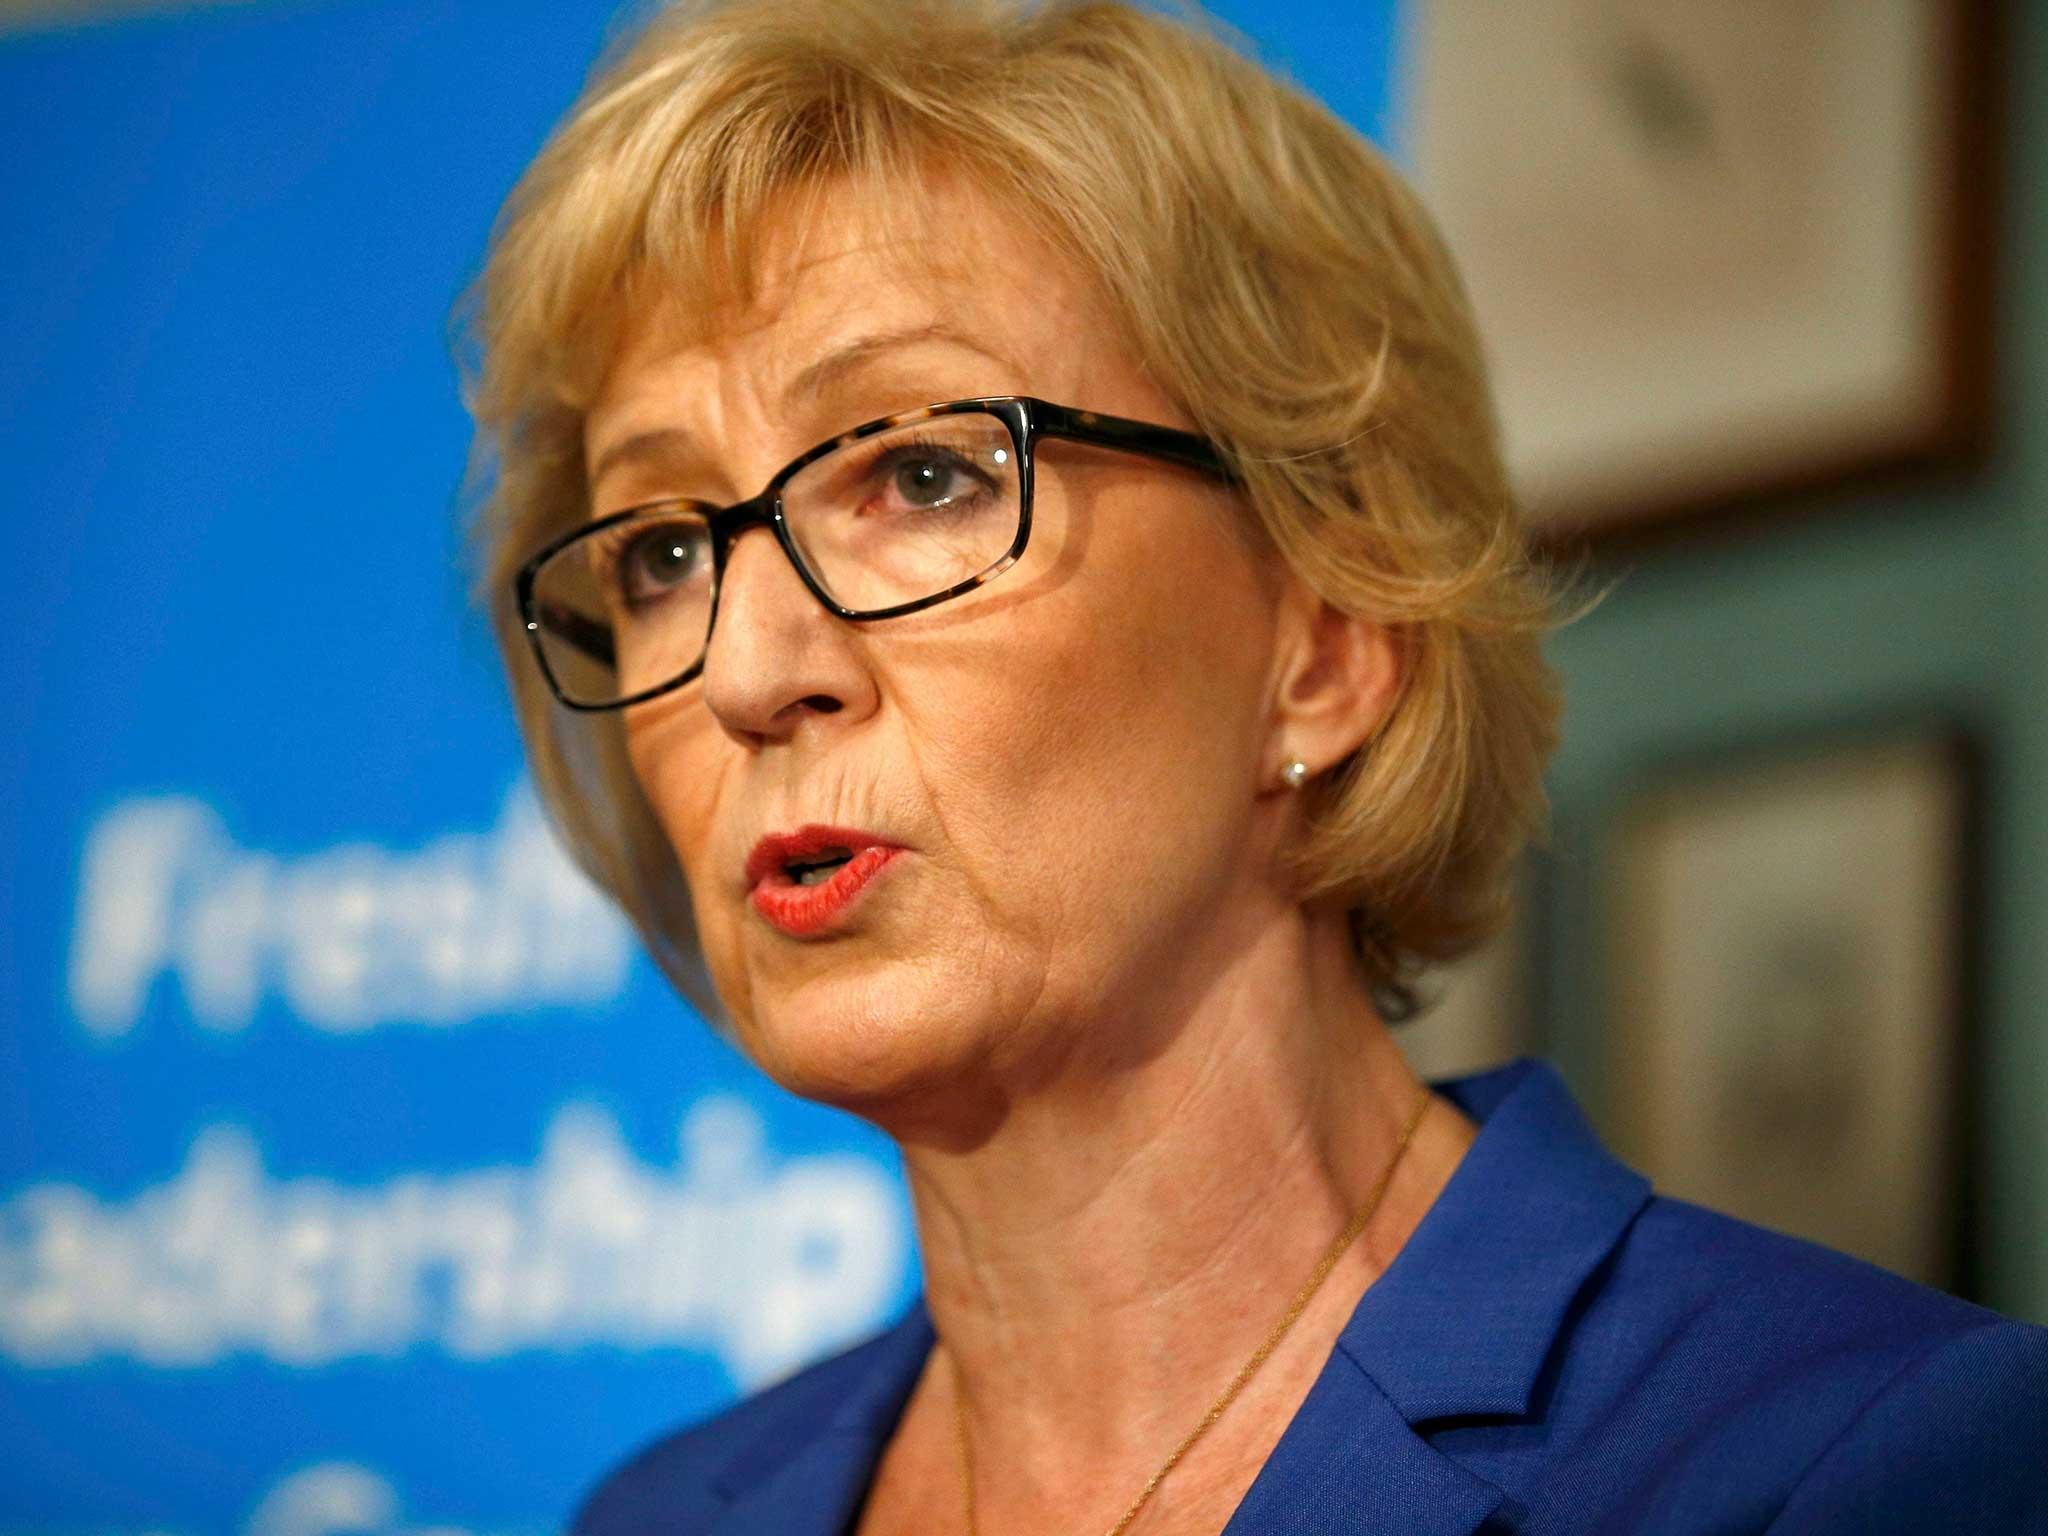 andrea leadsom accused of  u0026 39 misleading u0026 39  claims on her cv